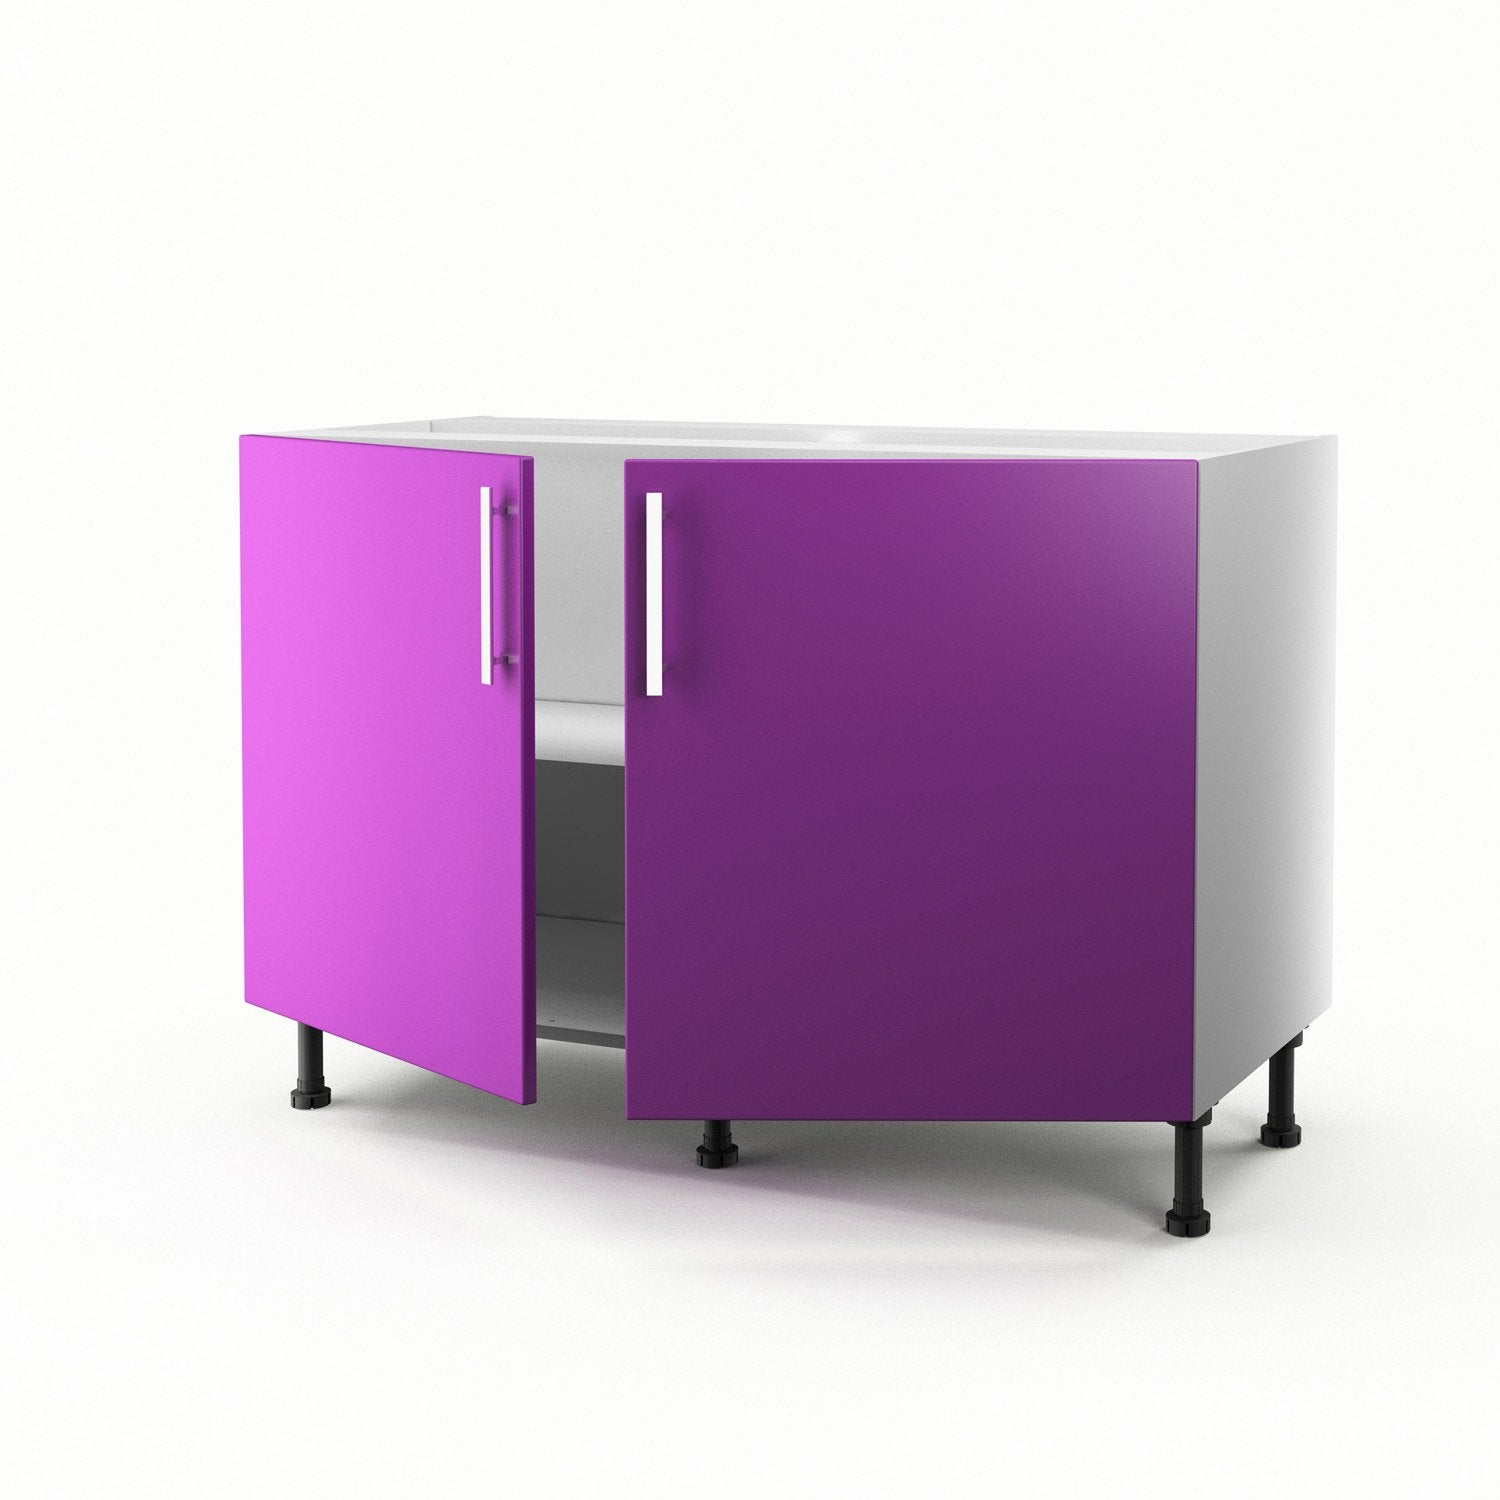 meuble de cuisine sous vier violet 2 portes d lice x x cm leroy merlin. Black Bedroom Furniture Sets. Home Design Ideas